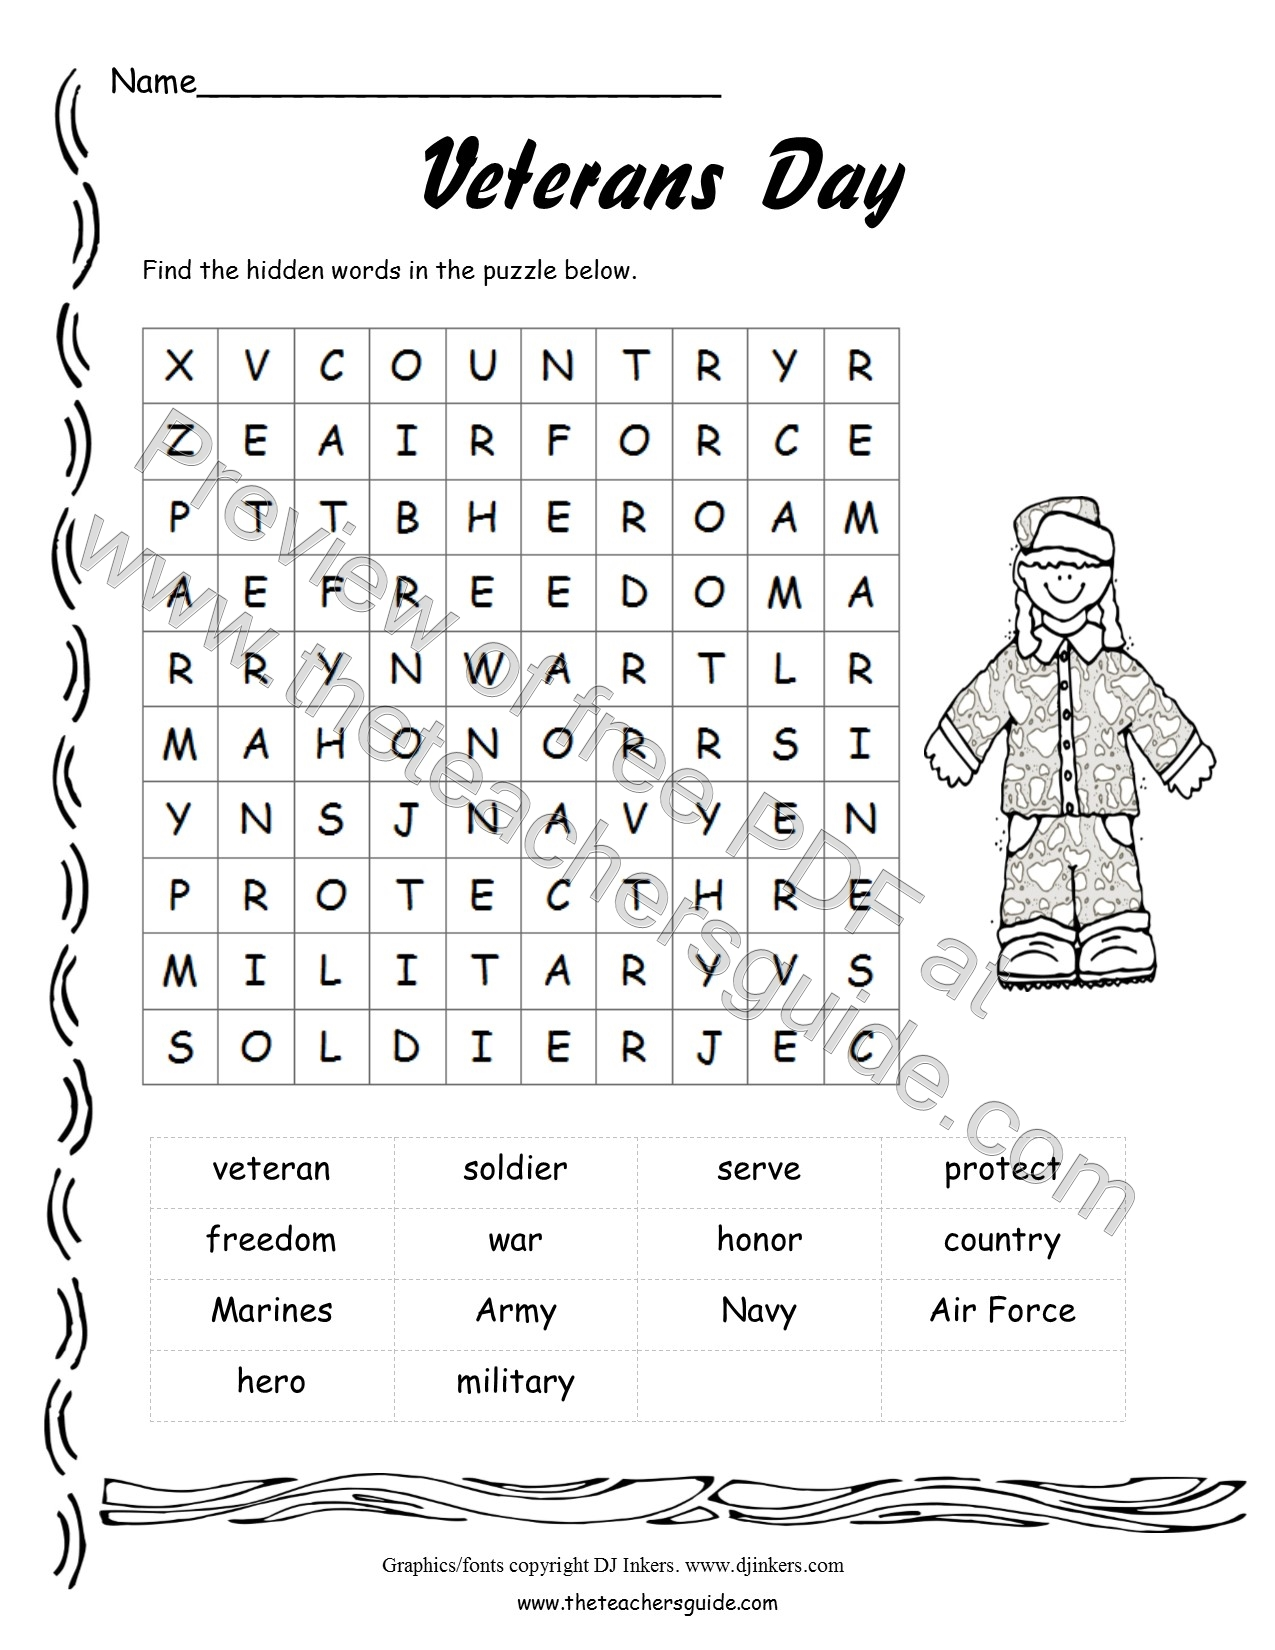 Veterans' Day Lesson Plans, Themes, Printouts, Crafts